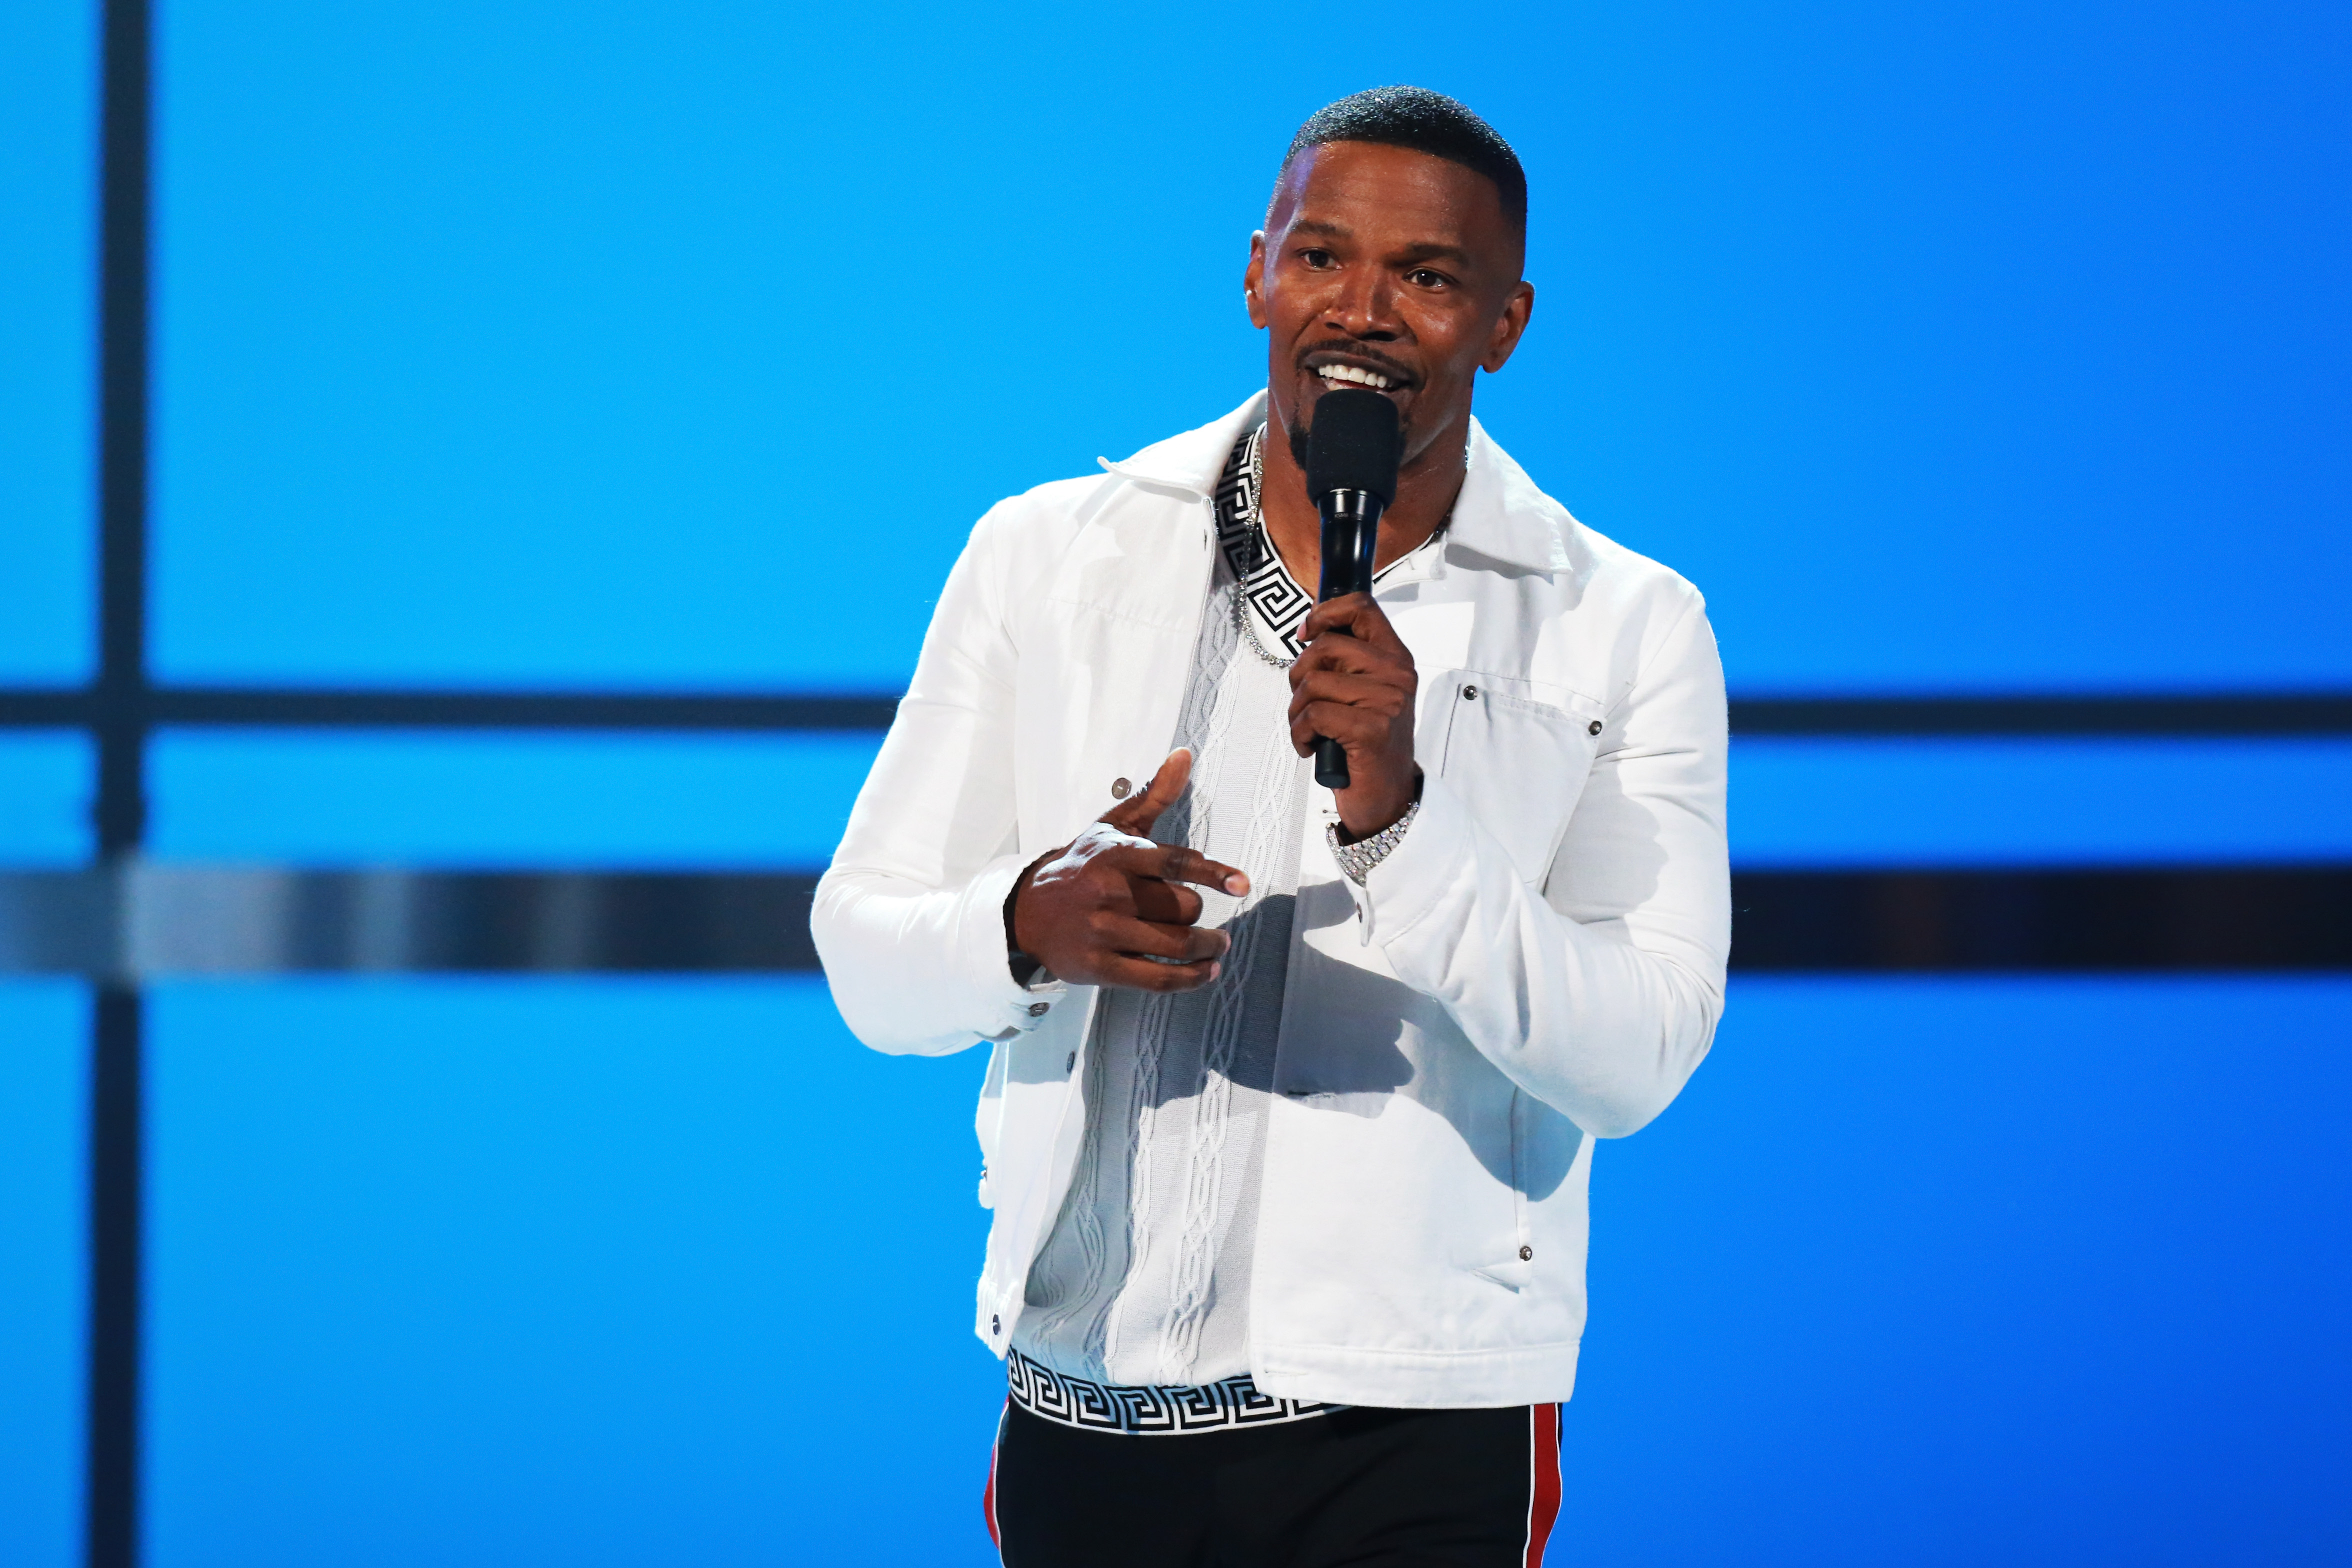 Host Jamie Foxx speaks onstage at the 2018 BET Awards at Microsoft Theater in Los Angeles, California on June 24, 2018.